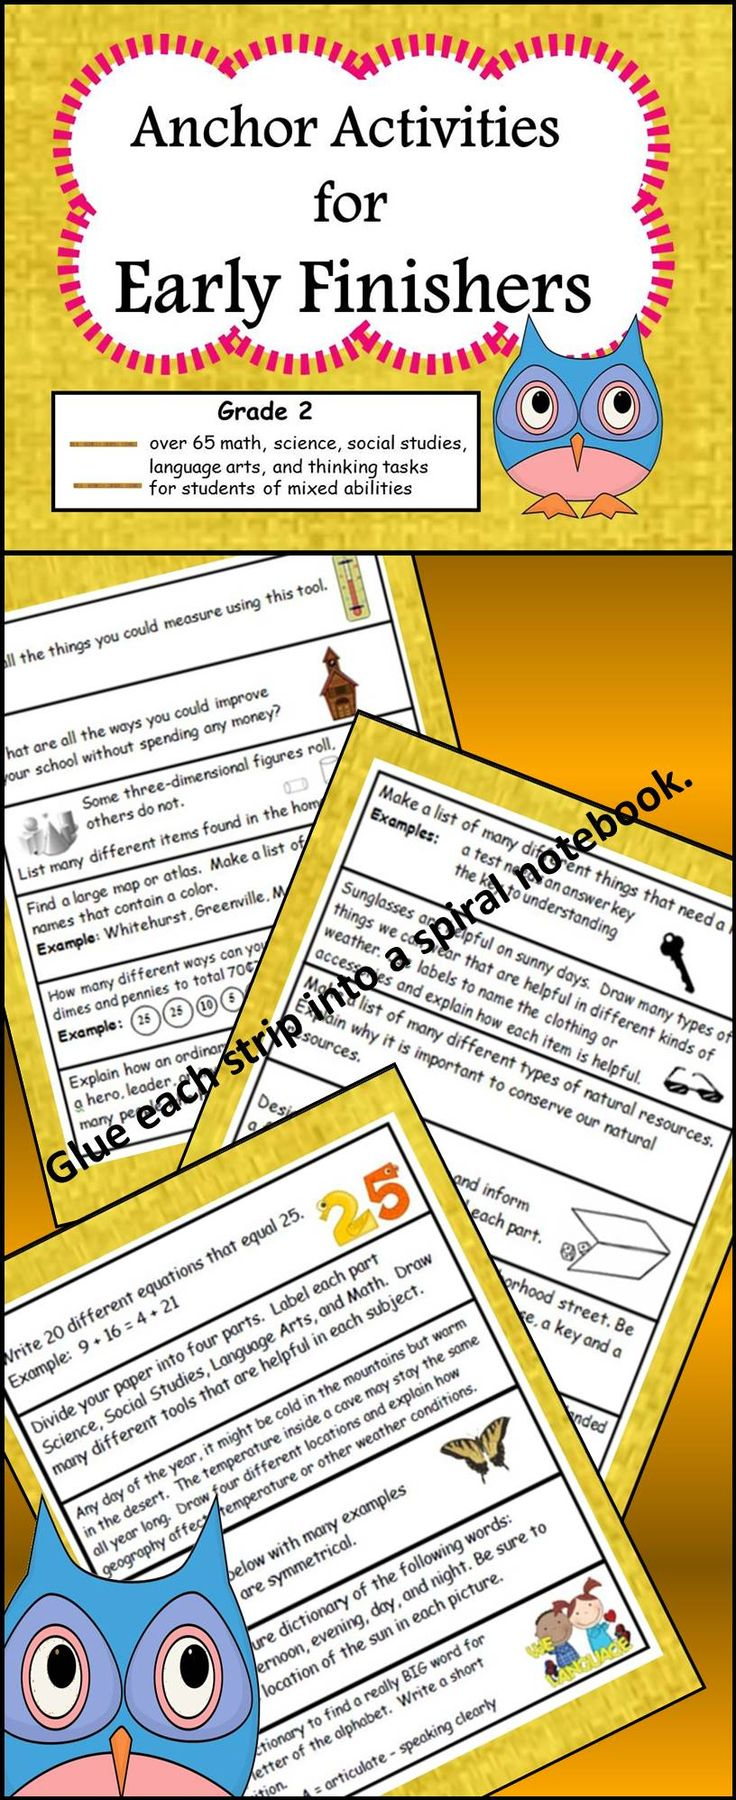 These thought provoking anchor activities are the perfect tool if you are looking for meaningful tasks from your 2nd grade Early Finishers.  Anchor activities for other grades and subjects can be found on www.teacherspayteachers.com/Store/Dazzle-On-A-Dime